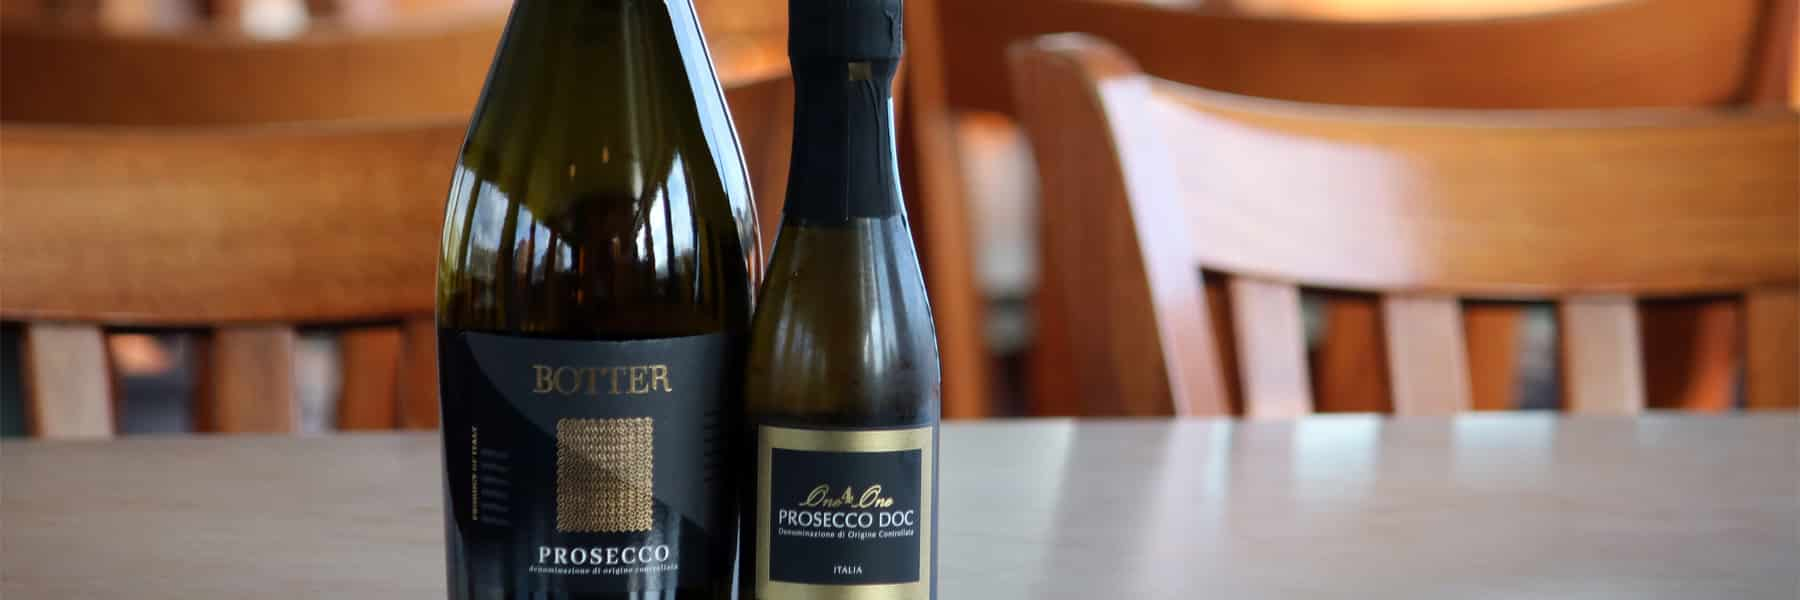 National Afternoon Tea Week & National Prosecco Day